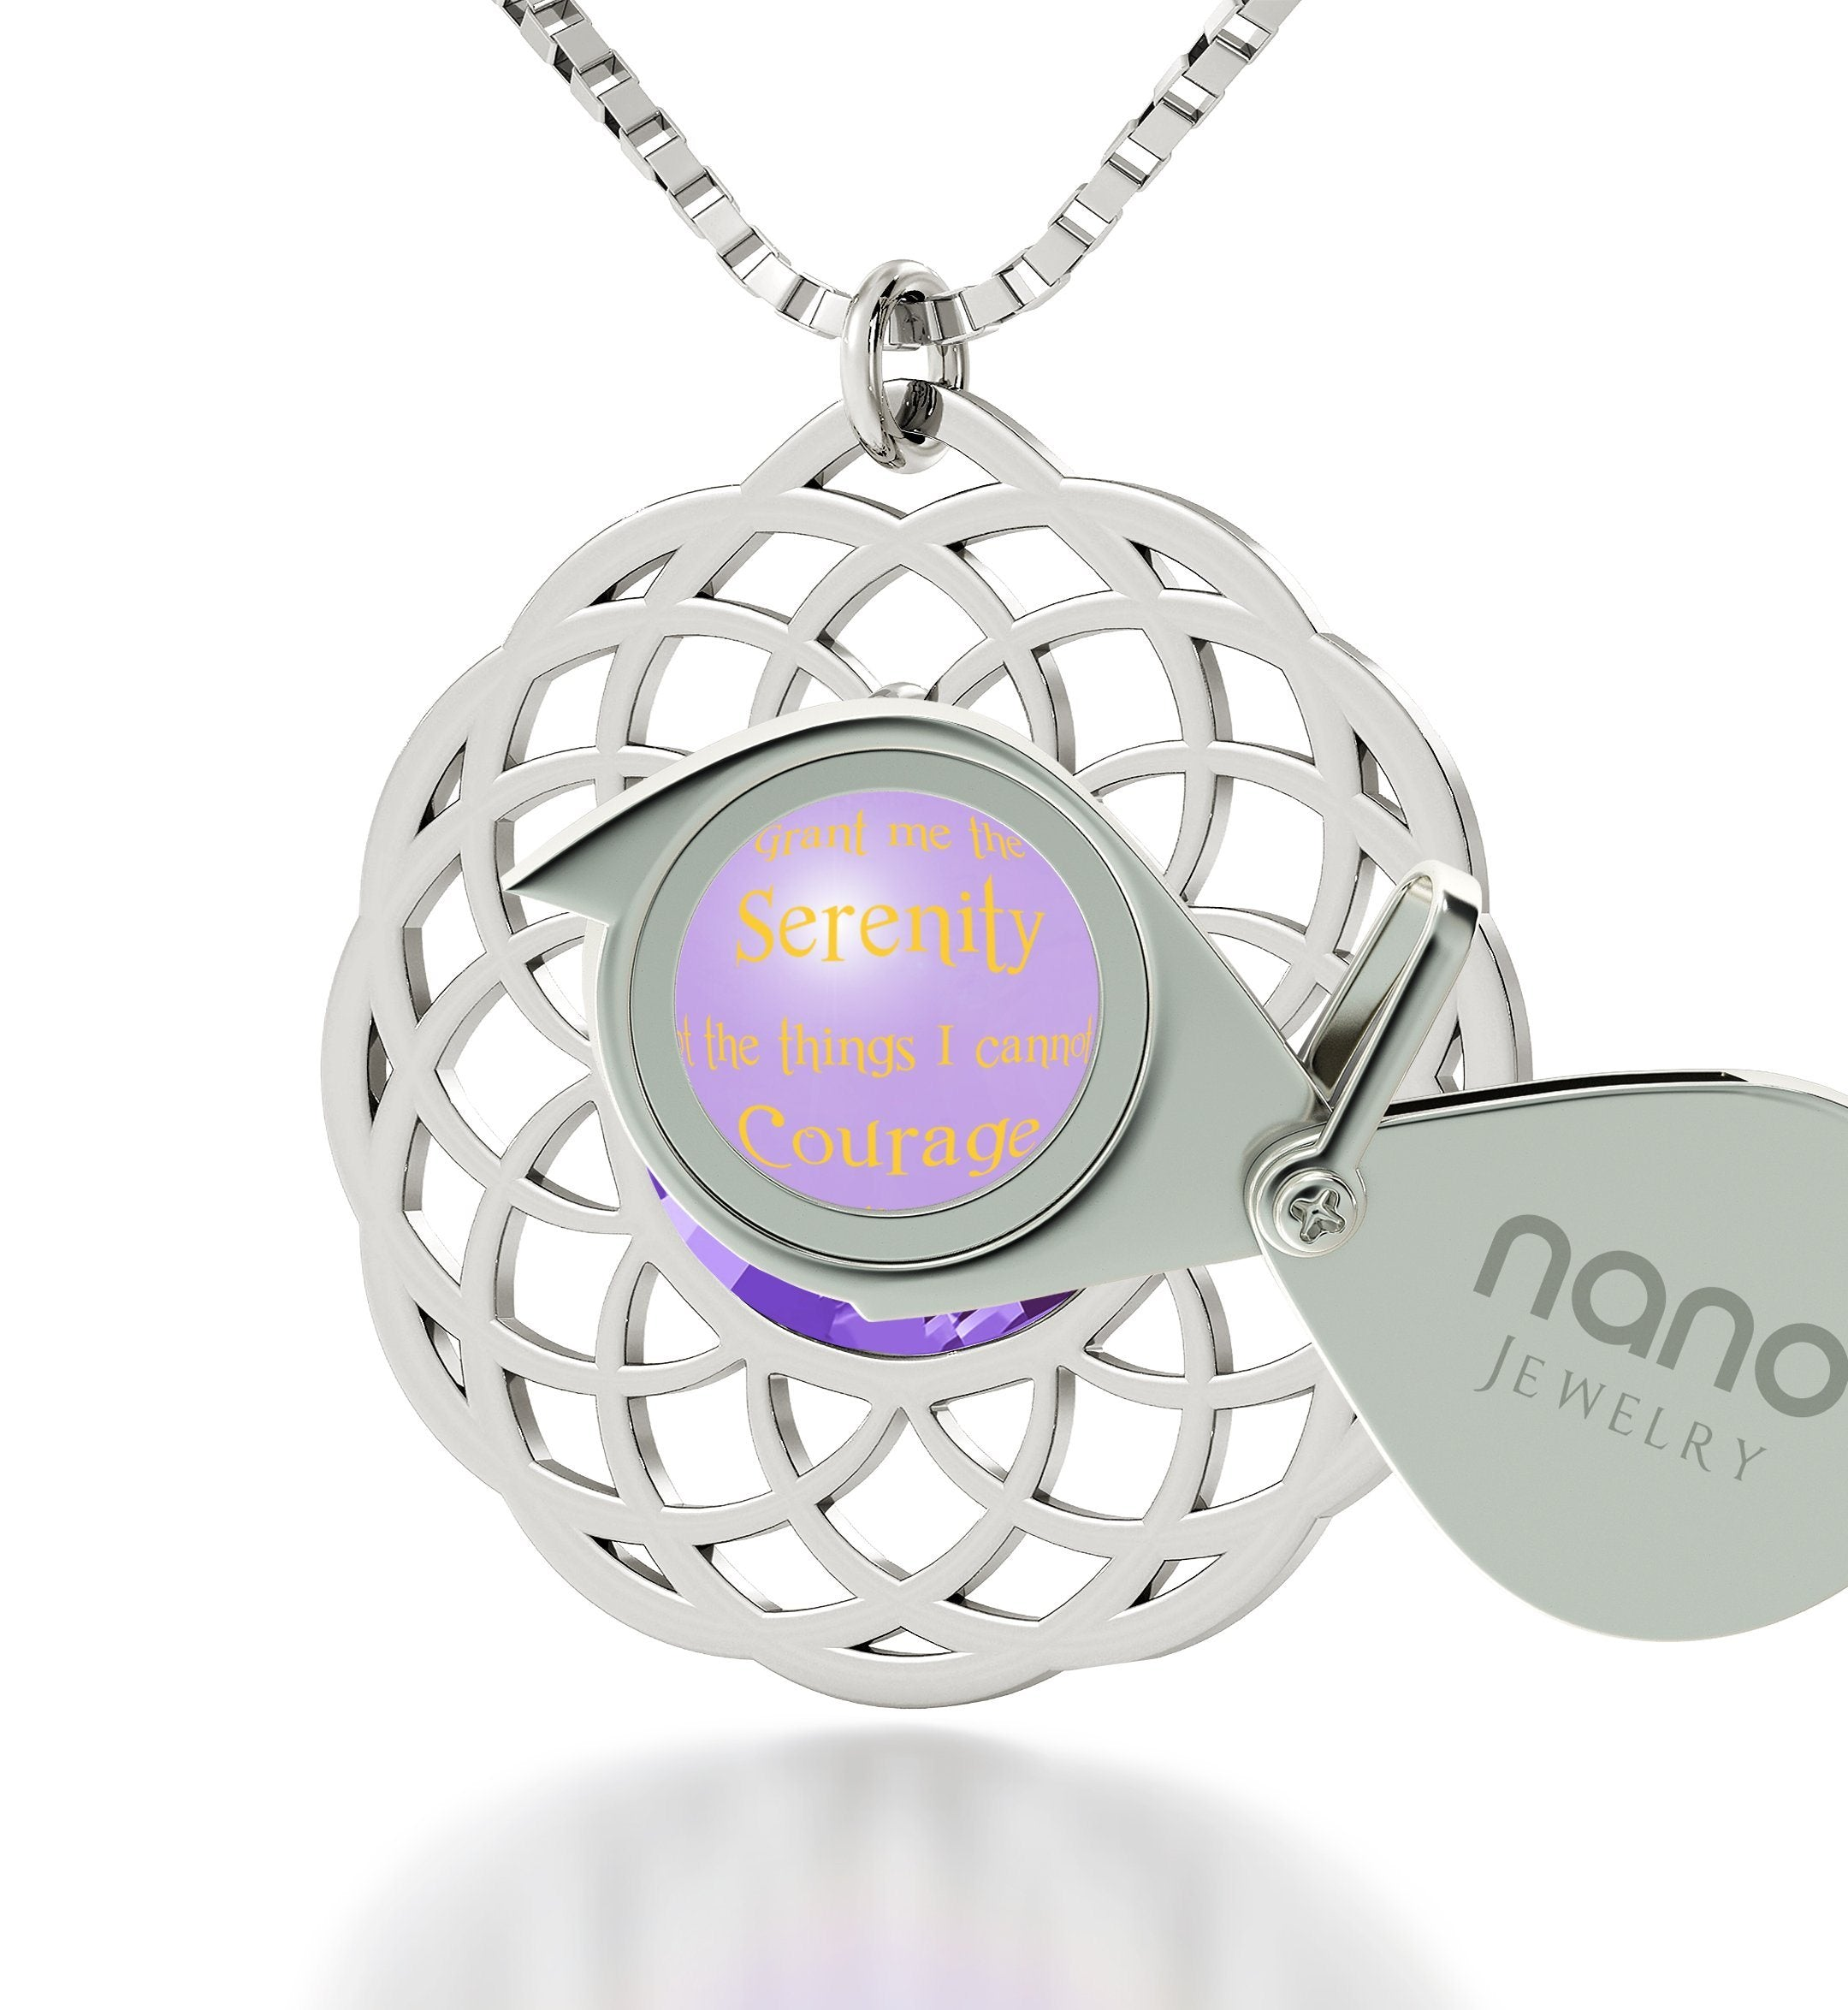 Serenity Jewelry: What to Get Girlfriend for Christmas, Best Presents for Women, Purple Necklace, Nano Jewelry